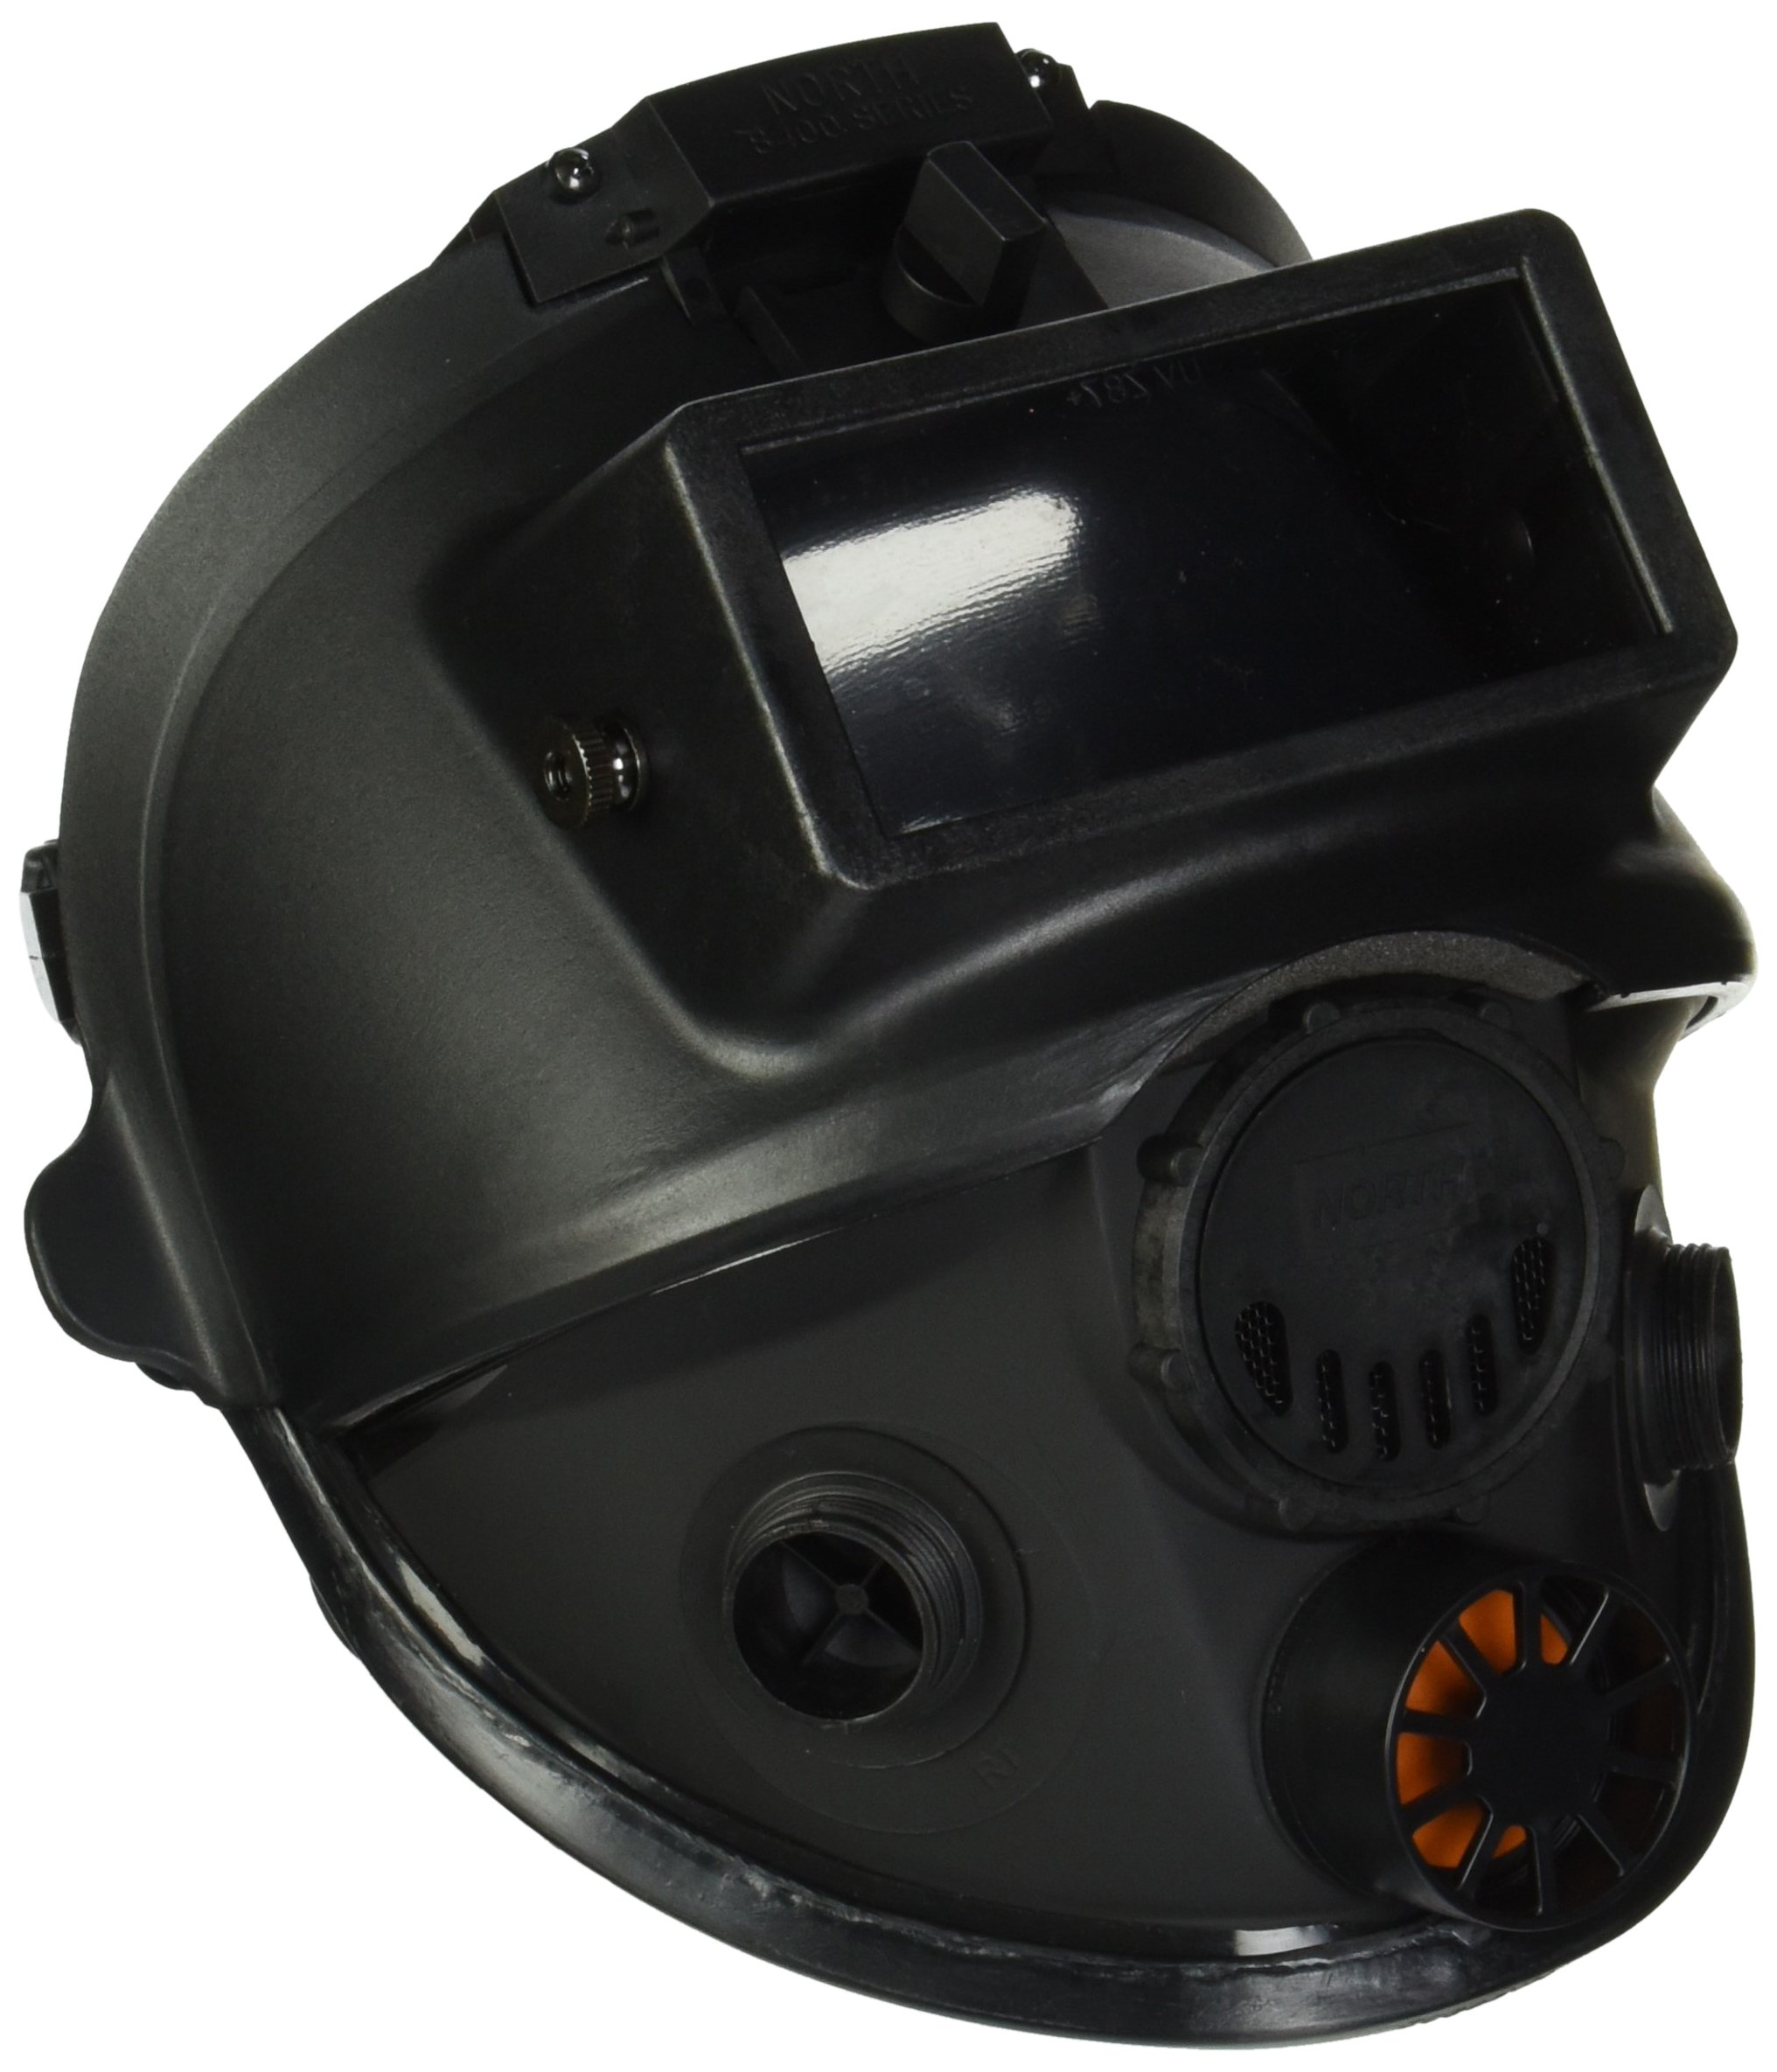 7600 Series Silicone Full Facepiece with Welding Attachment, 5 Strap Head Harness & Dual Cartridge Connectors, Size Medium/Large by North